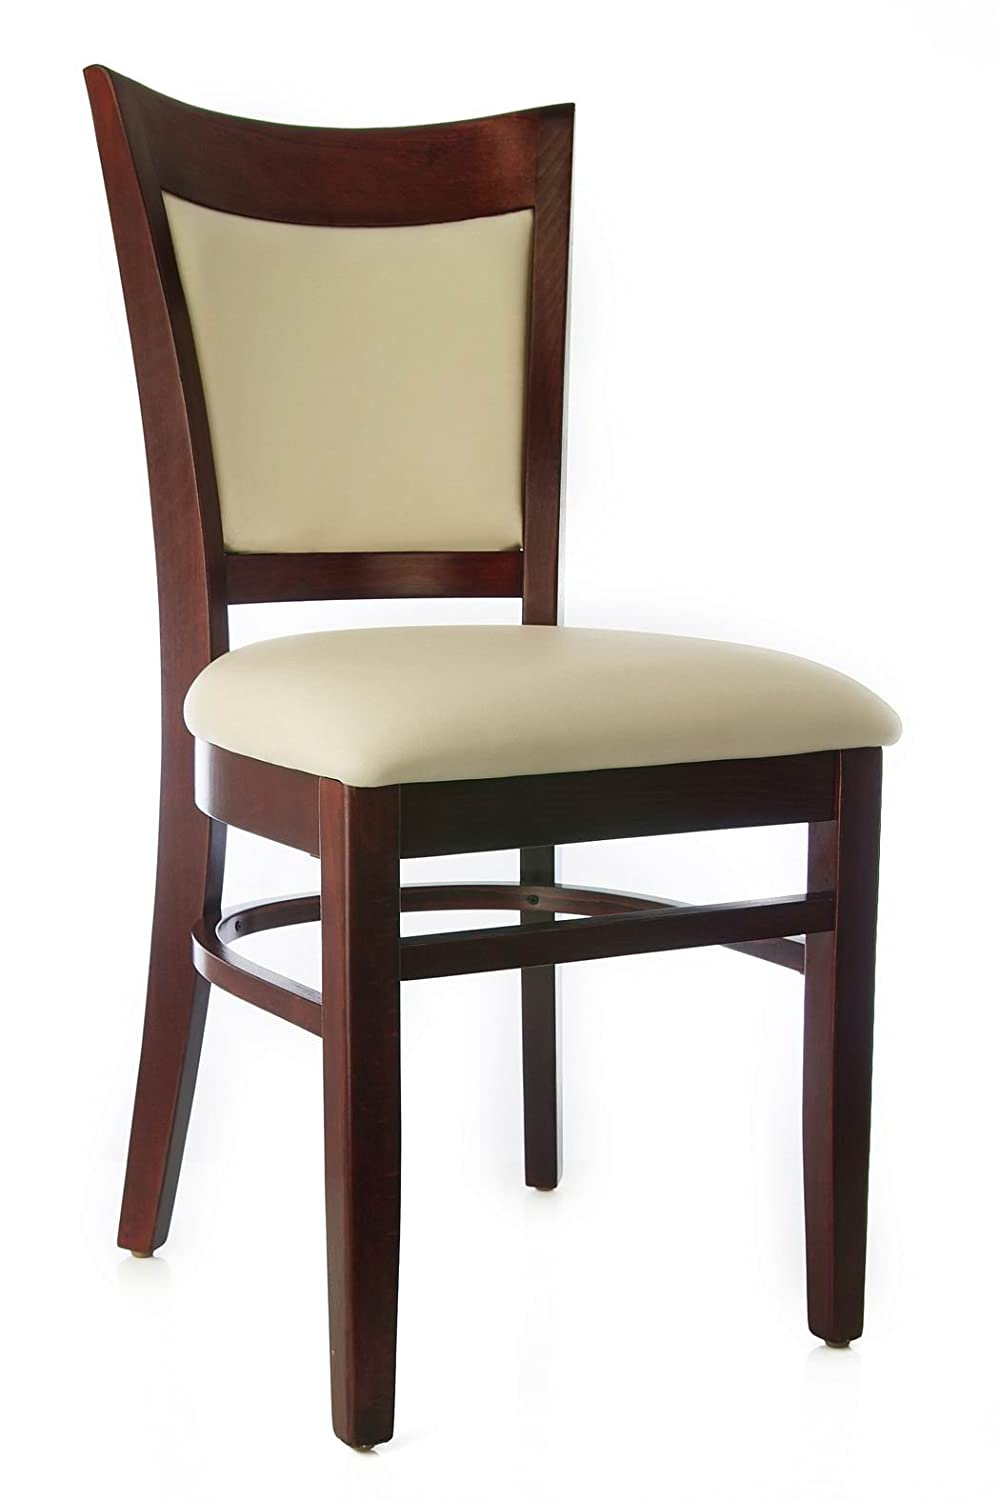 Beechwood Mountain BSD- Solid Beech Wood Side Chairs in Dark Mahogany for Kitchen and dining, set of 2